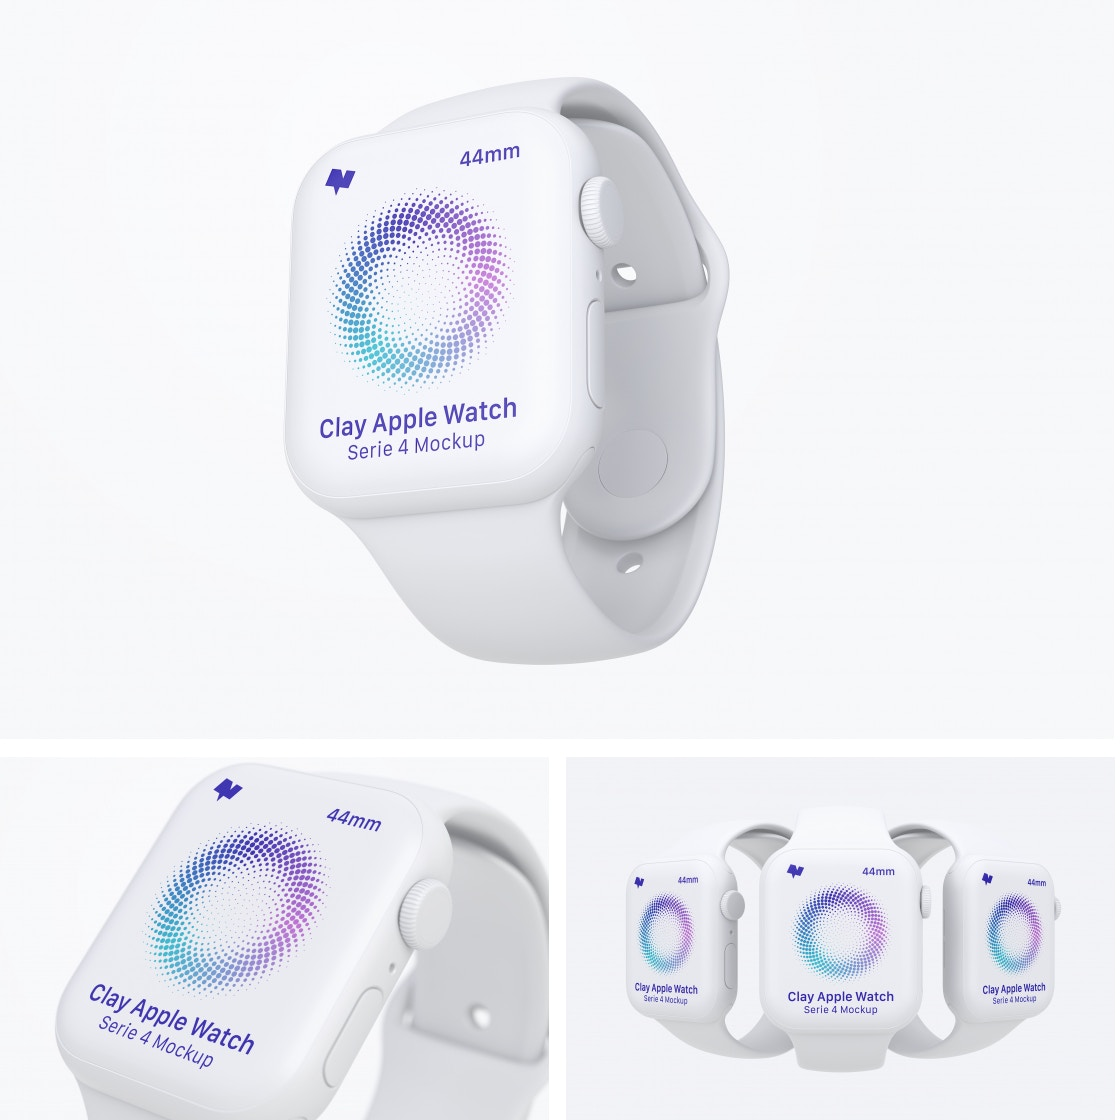 Clay Apple Watch Series 4 (44mm) Mockups Poster.